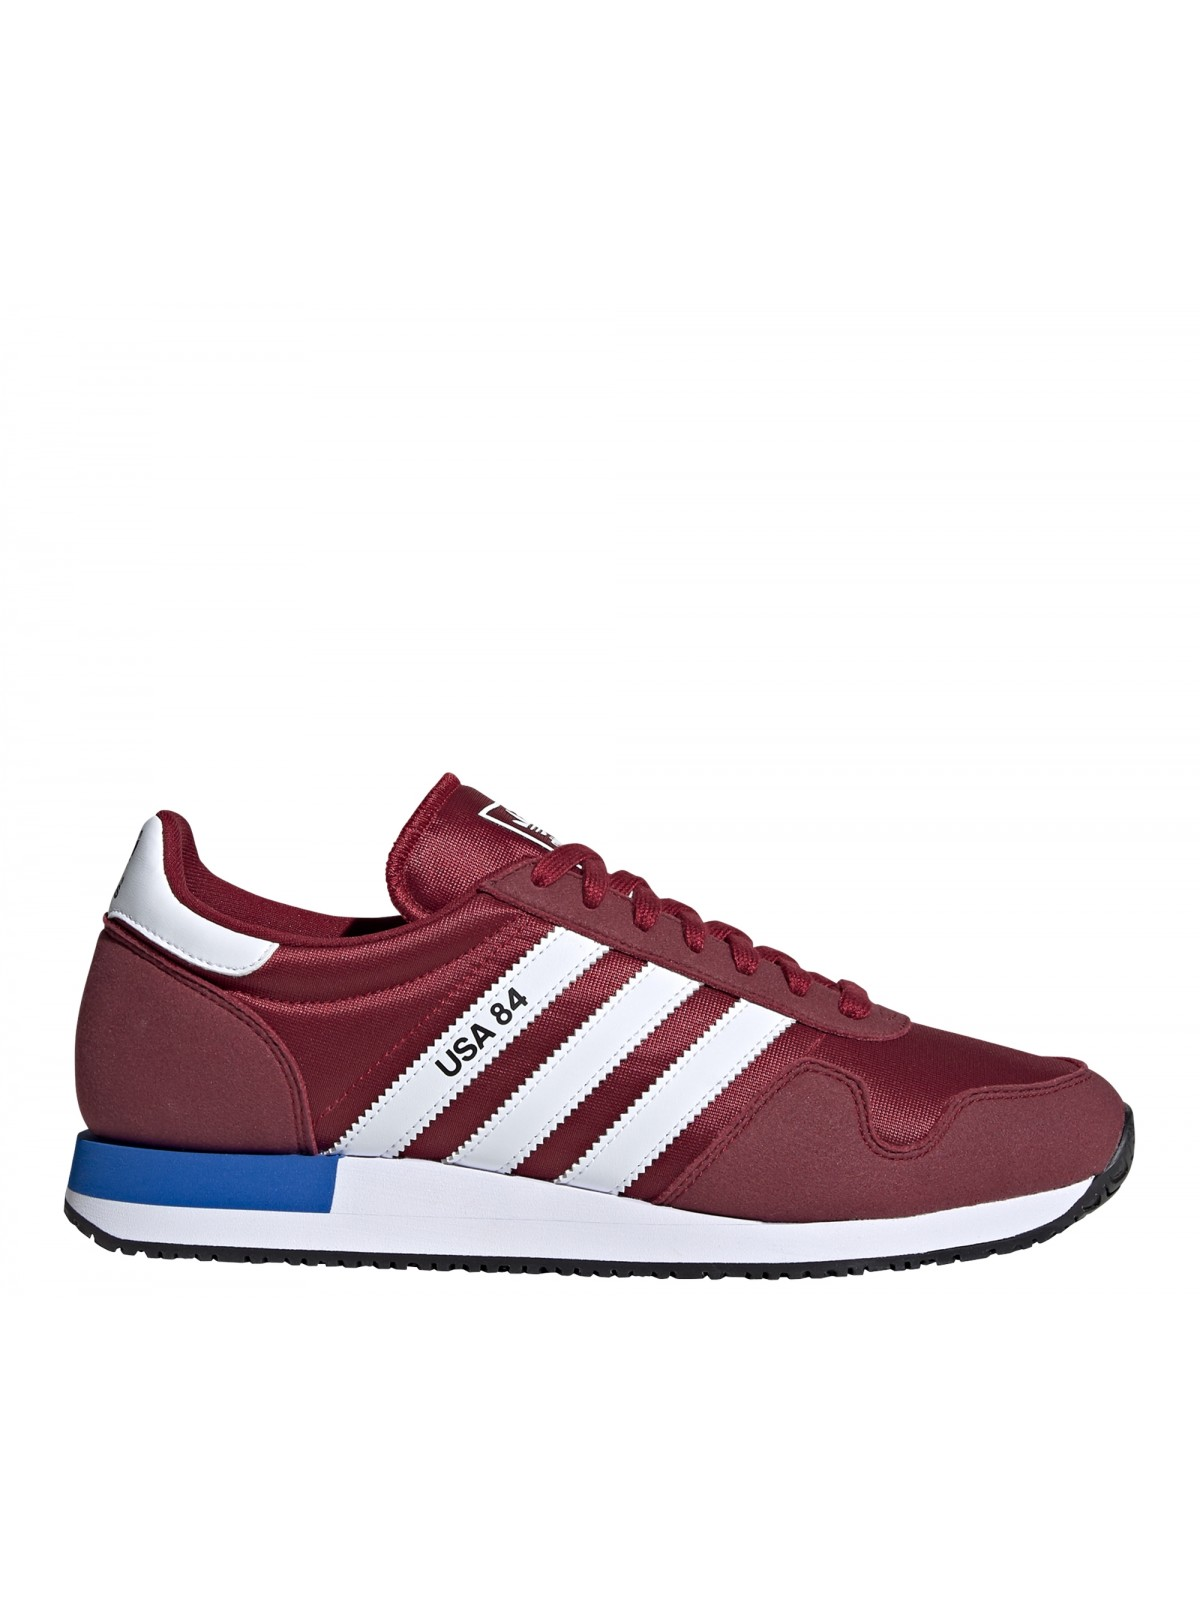 ADIDAS USA84 bordeaux / blanc